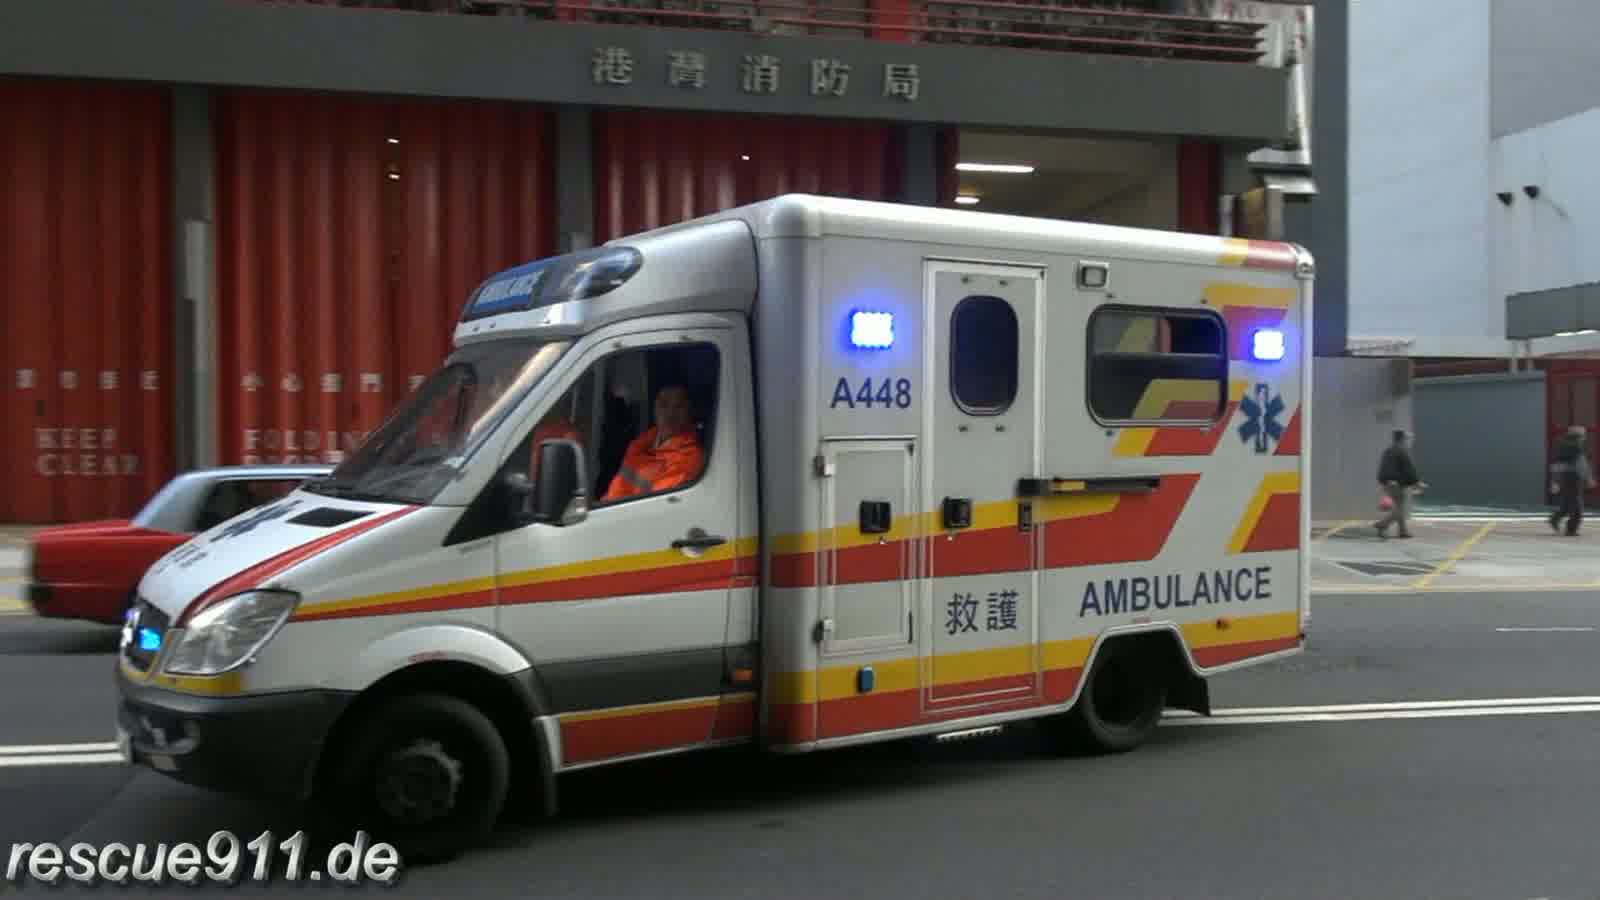 Ambulance A385 + A448 HKFSD Kong Wan FS (collection) (stream)